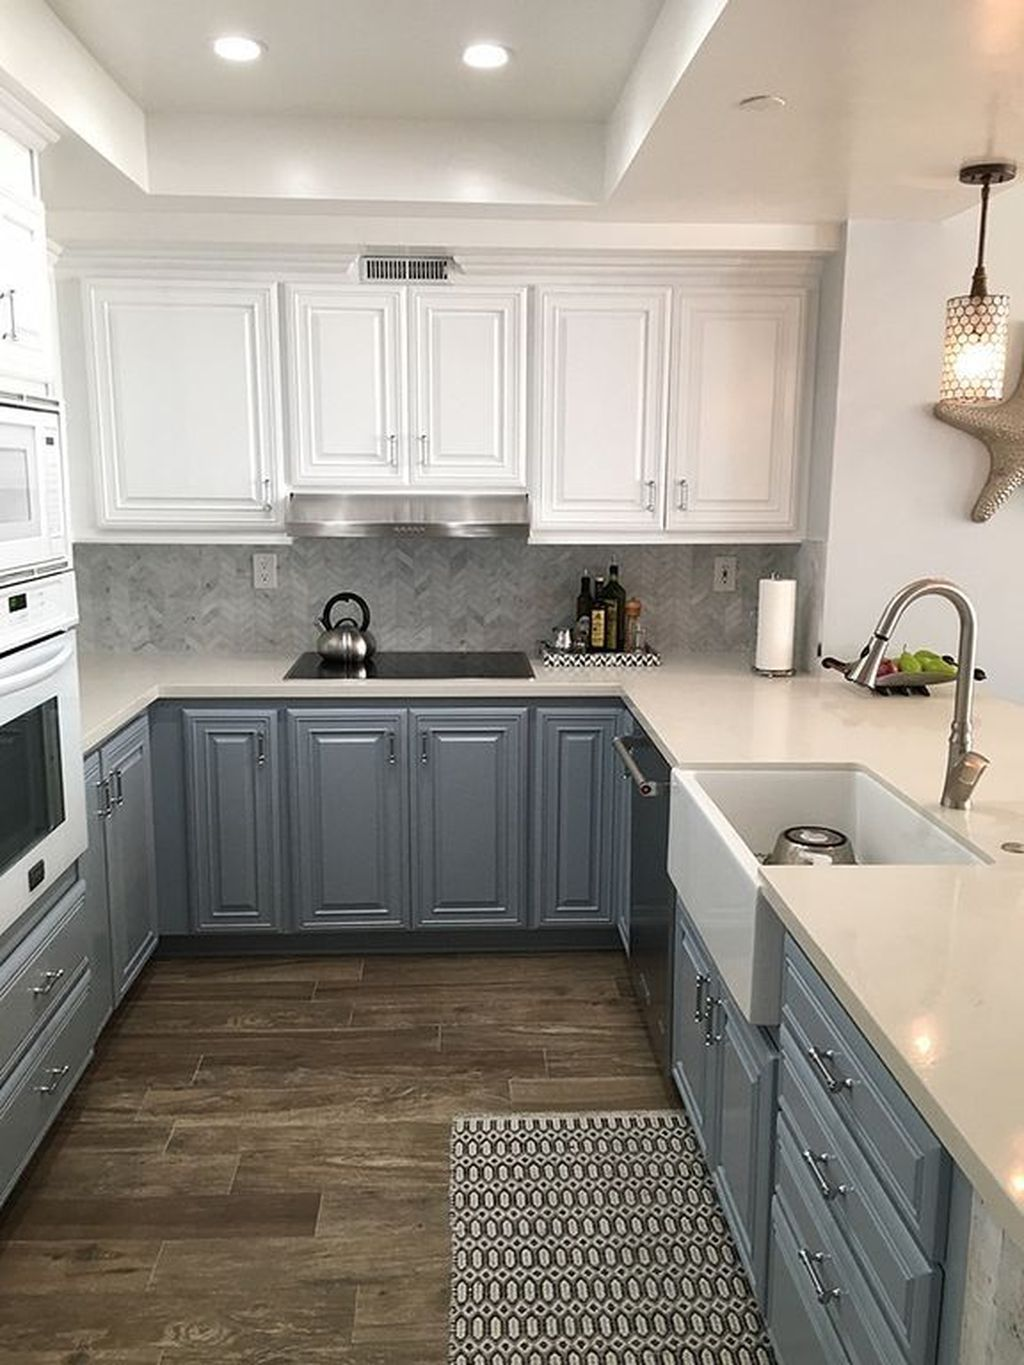 Remodeling Your Upper Cabinet Boxes 31 Fresh Ideas The Basics Of Upper Cabinet Boxes Wonderi Kitchen Lighting Remodel Kitchen Remodel Kitchen Ceiling Lights